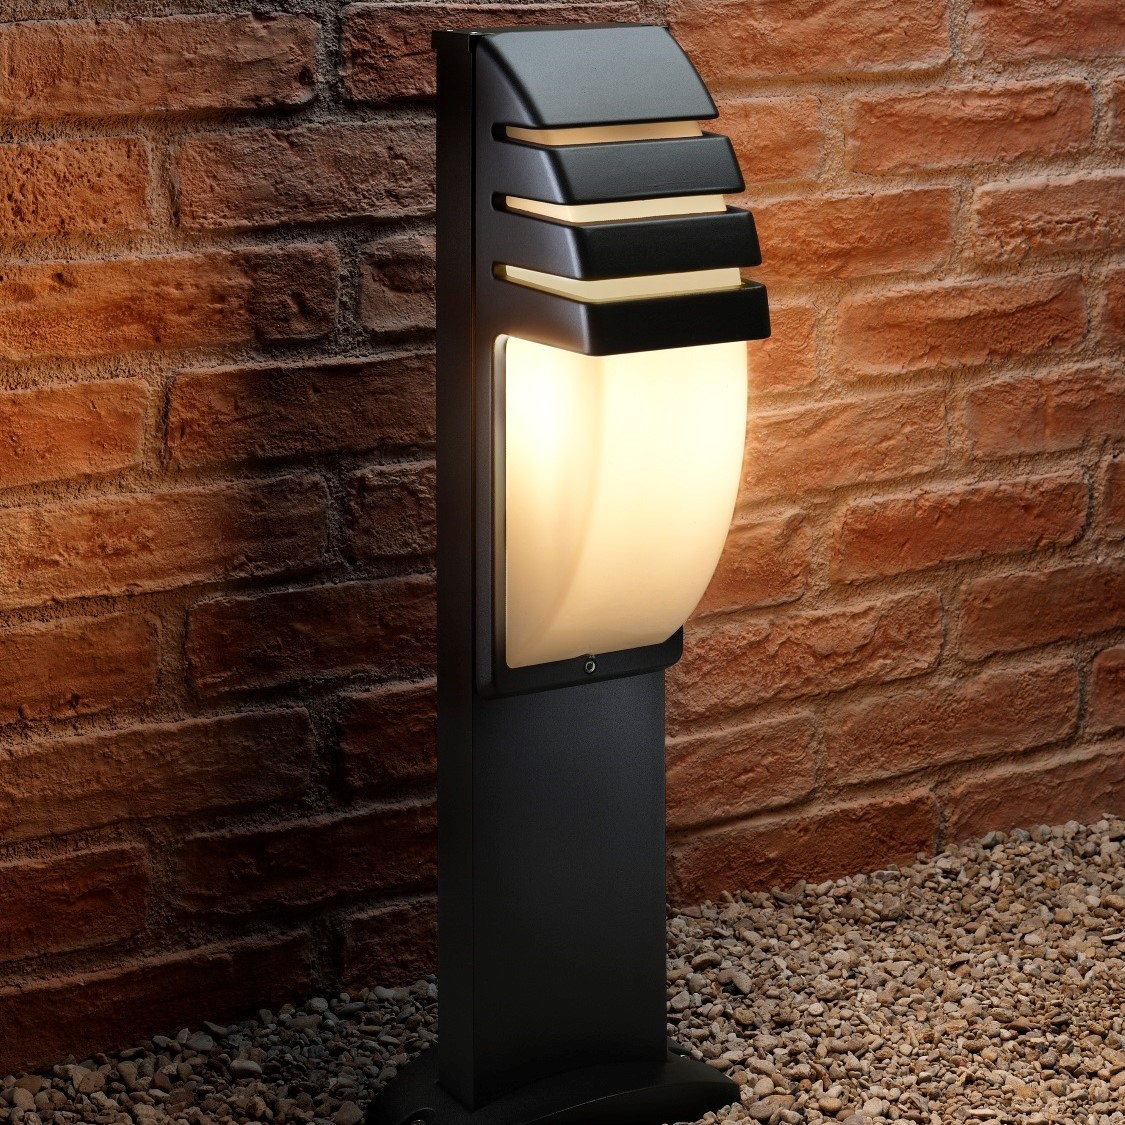 Auraglow Outdoor Garden Path Light - Addlestone